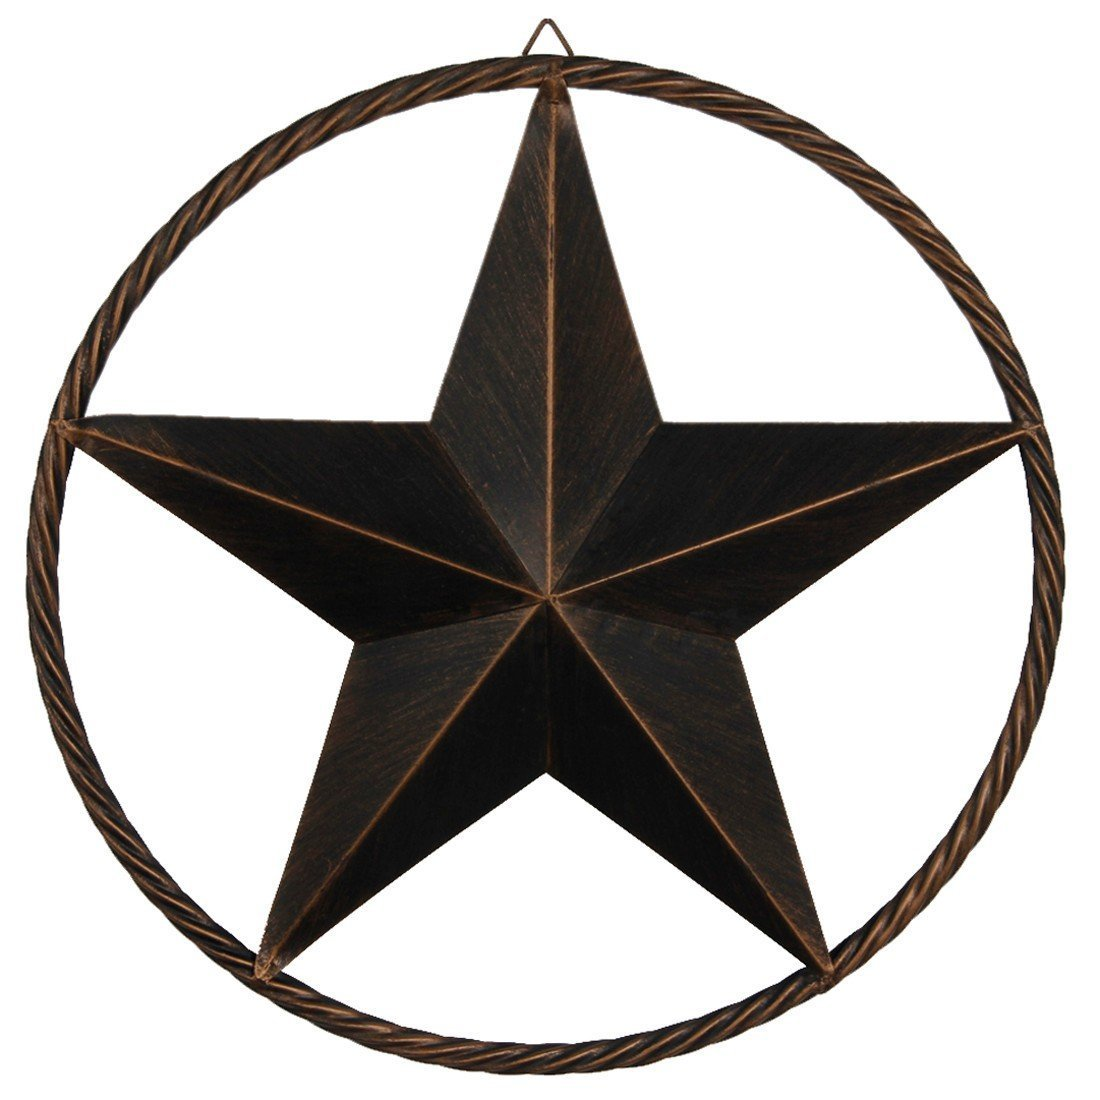 "EBEI Metal Barn Star Circle Rustic Style Decorative 24"" Vintage Texas Lone Star Dark Brown Western Home Decor"